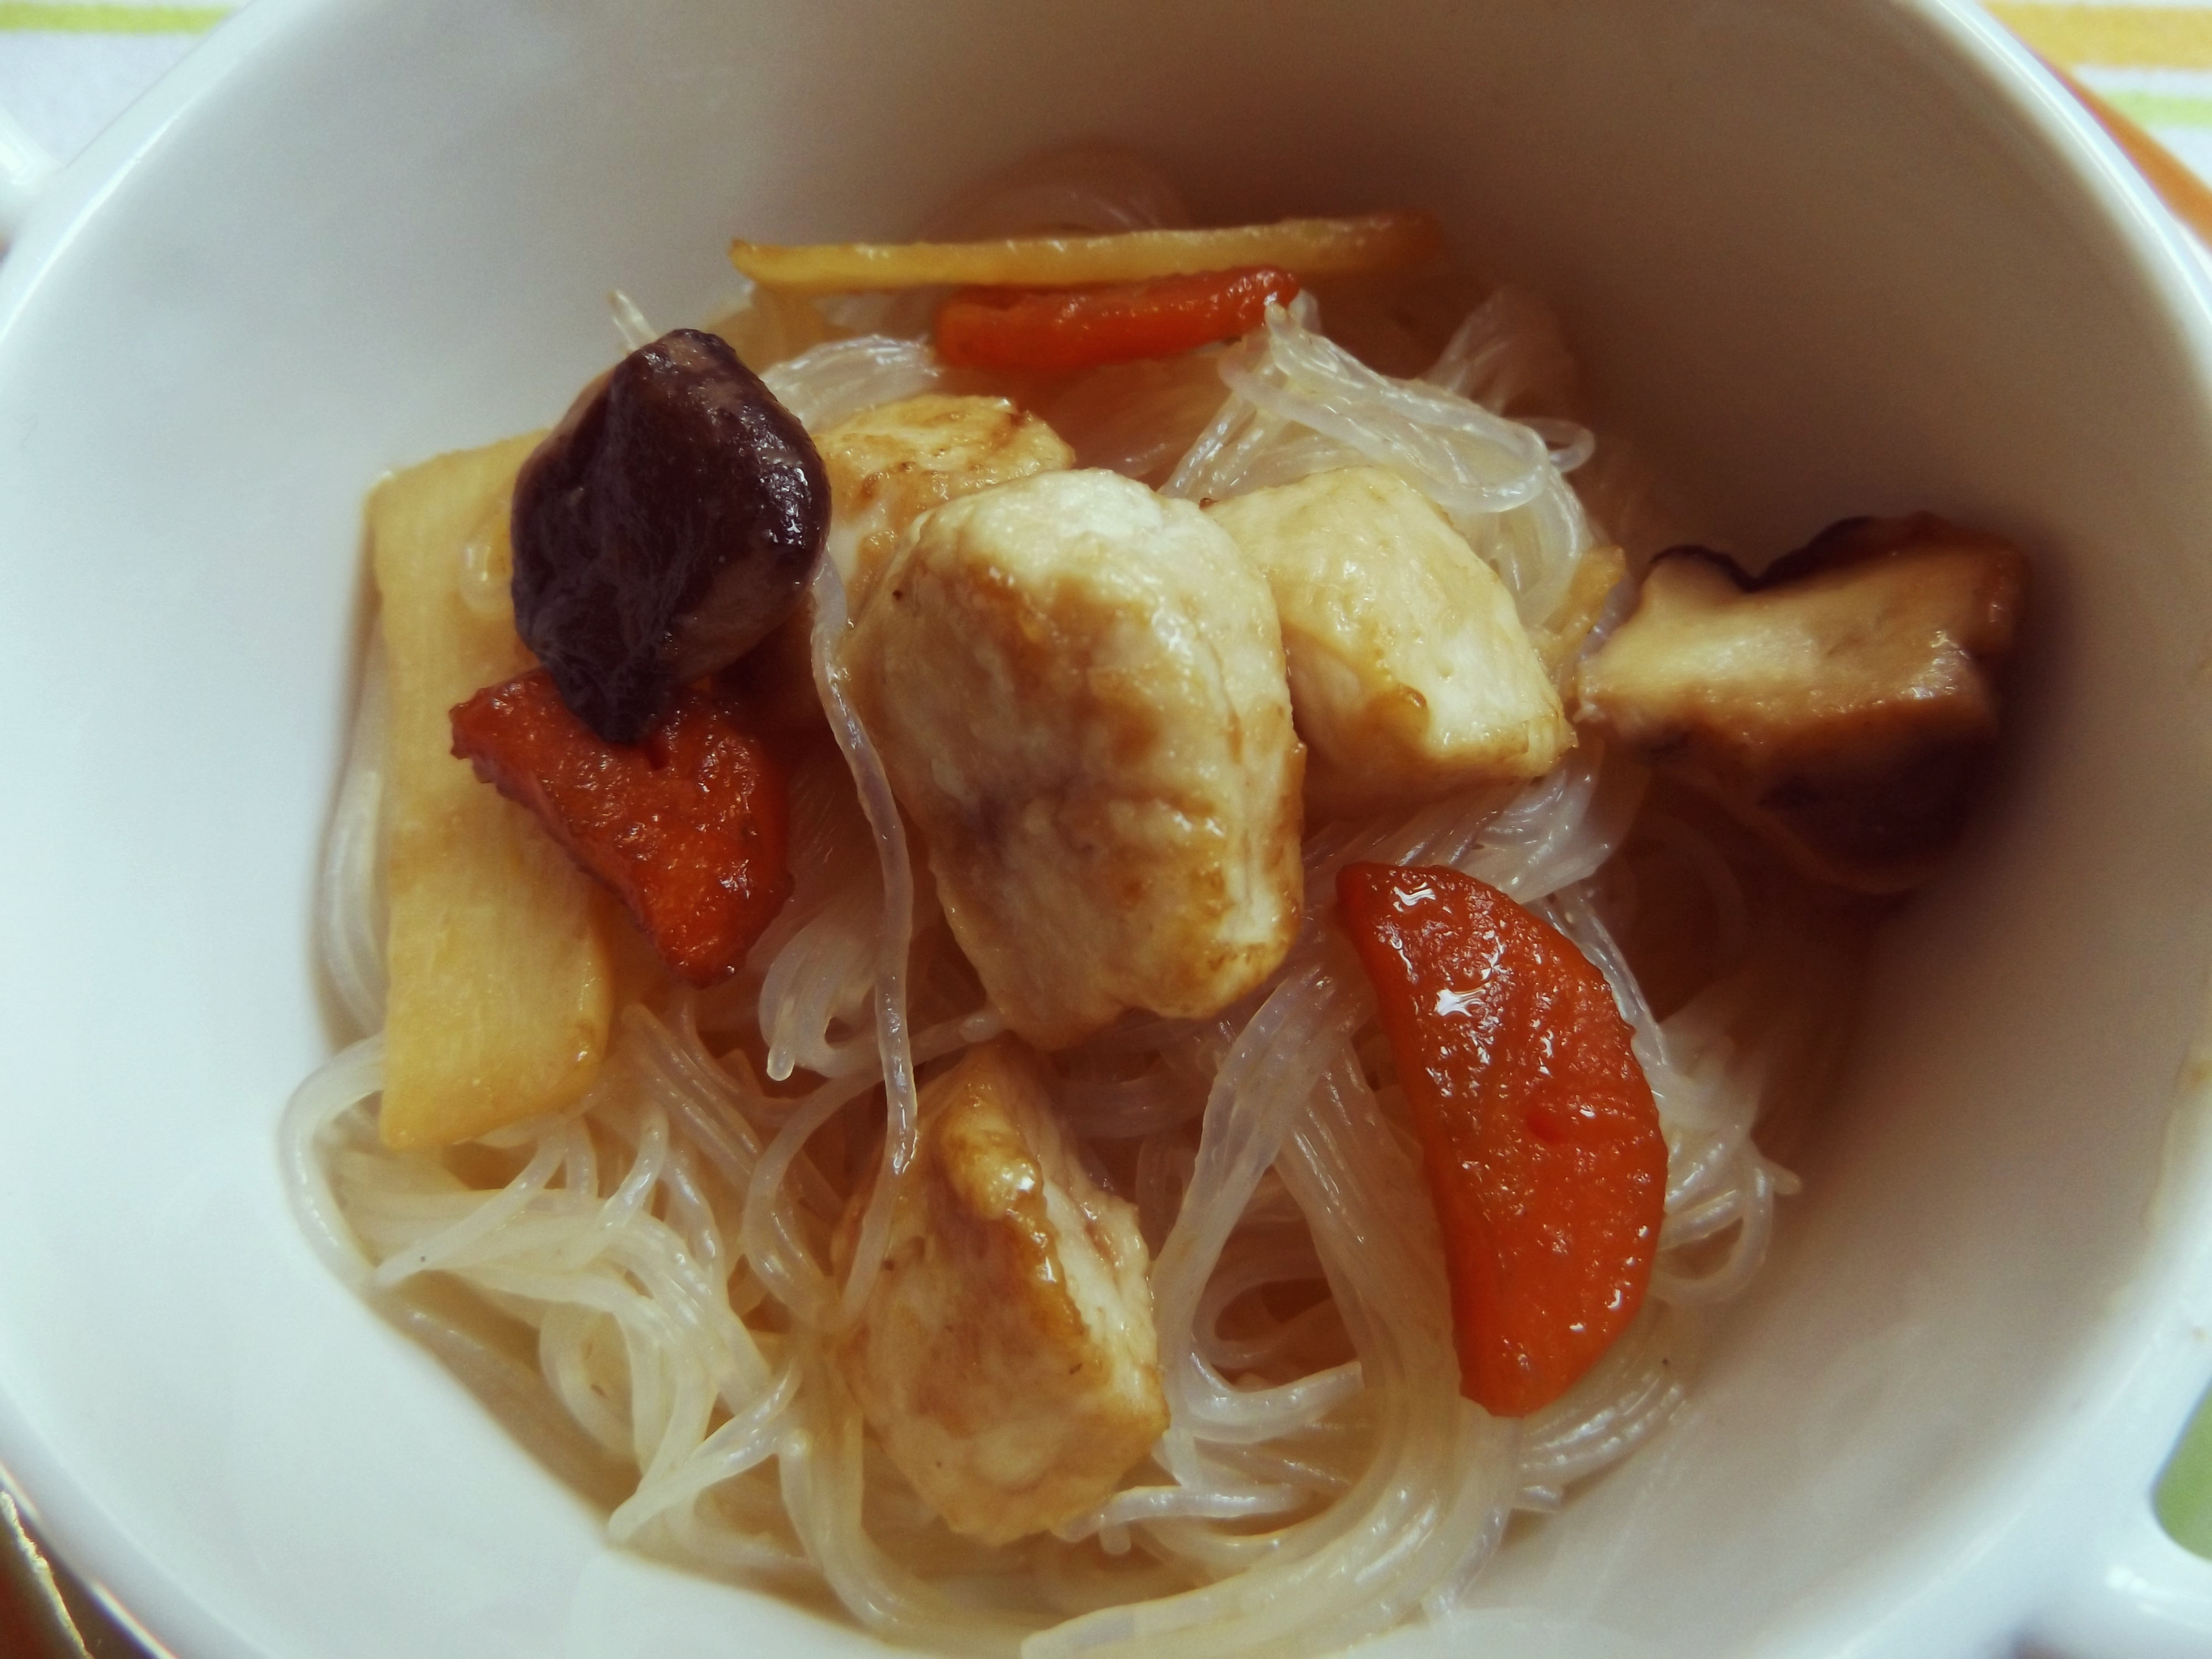 Rice spaghetti with chicken, mushrooms, bamboo and carrots